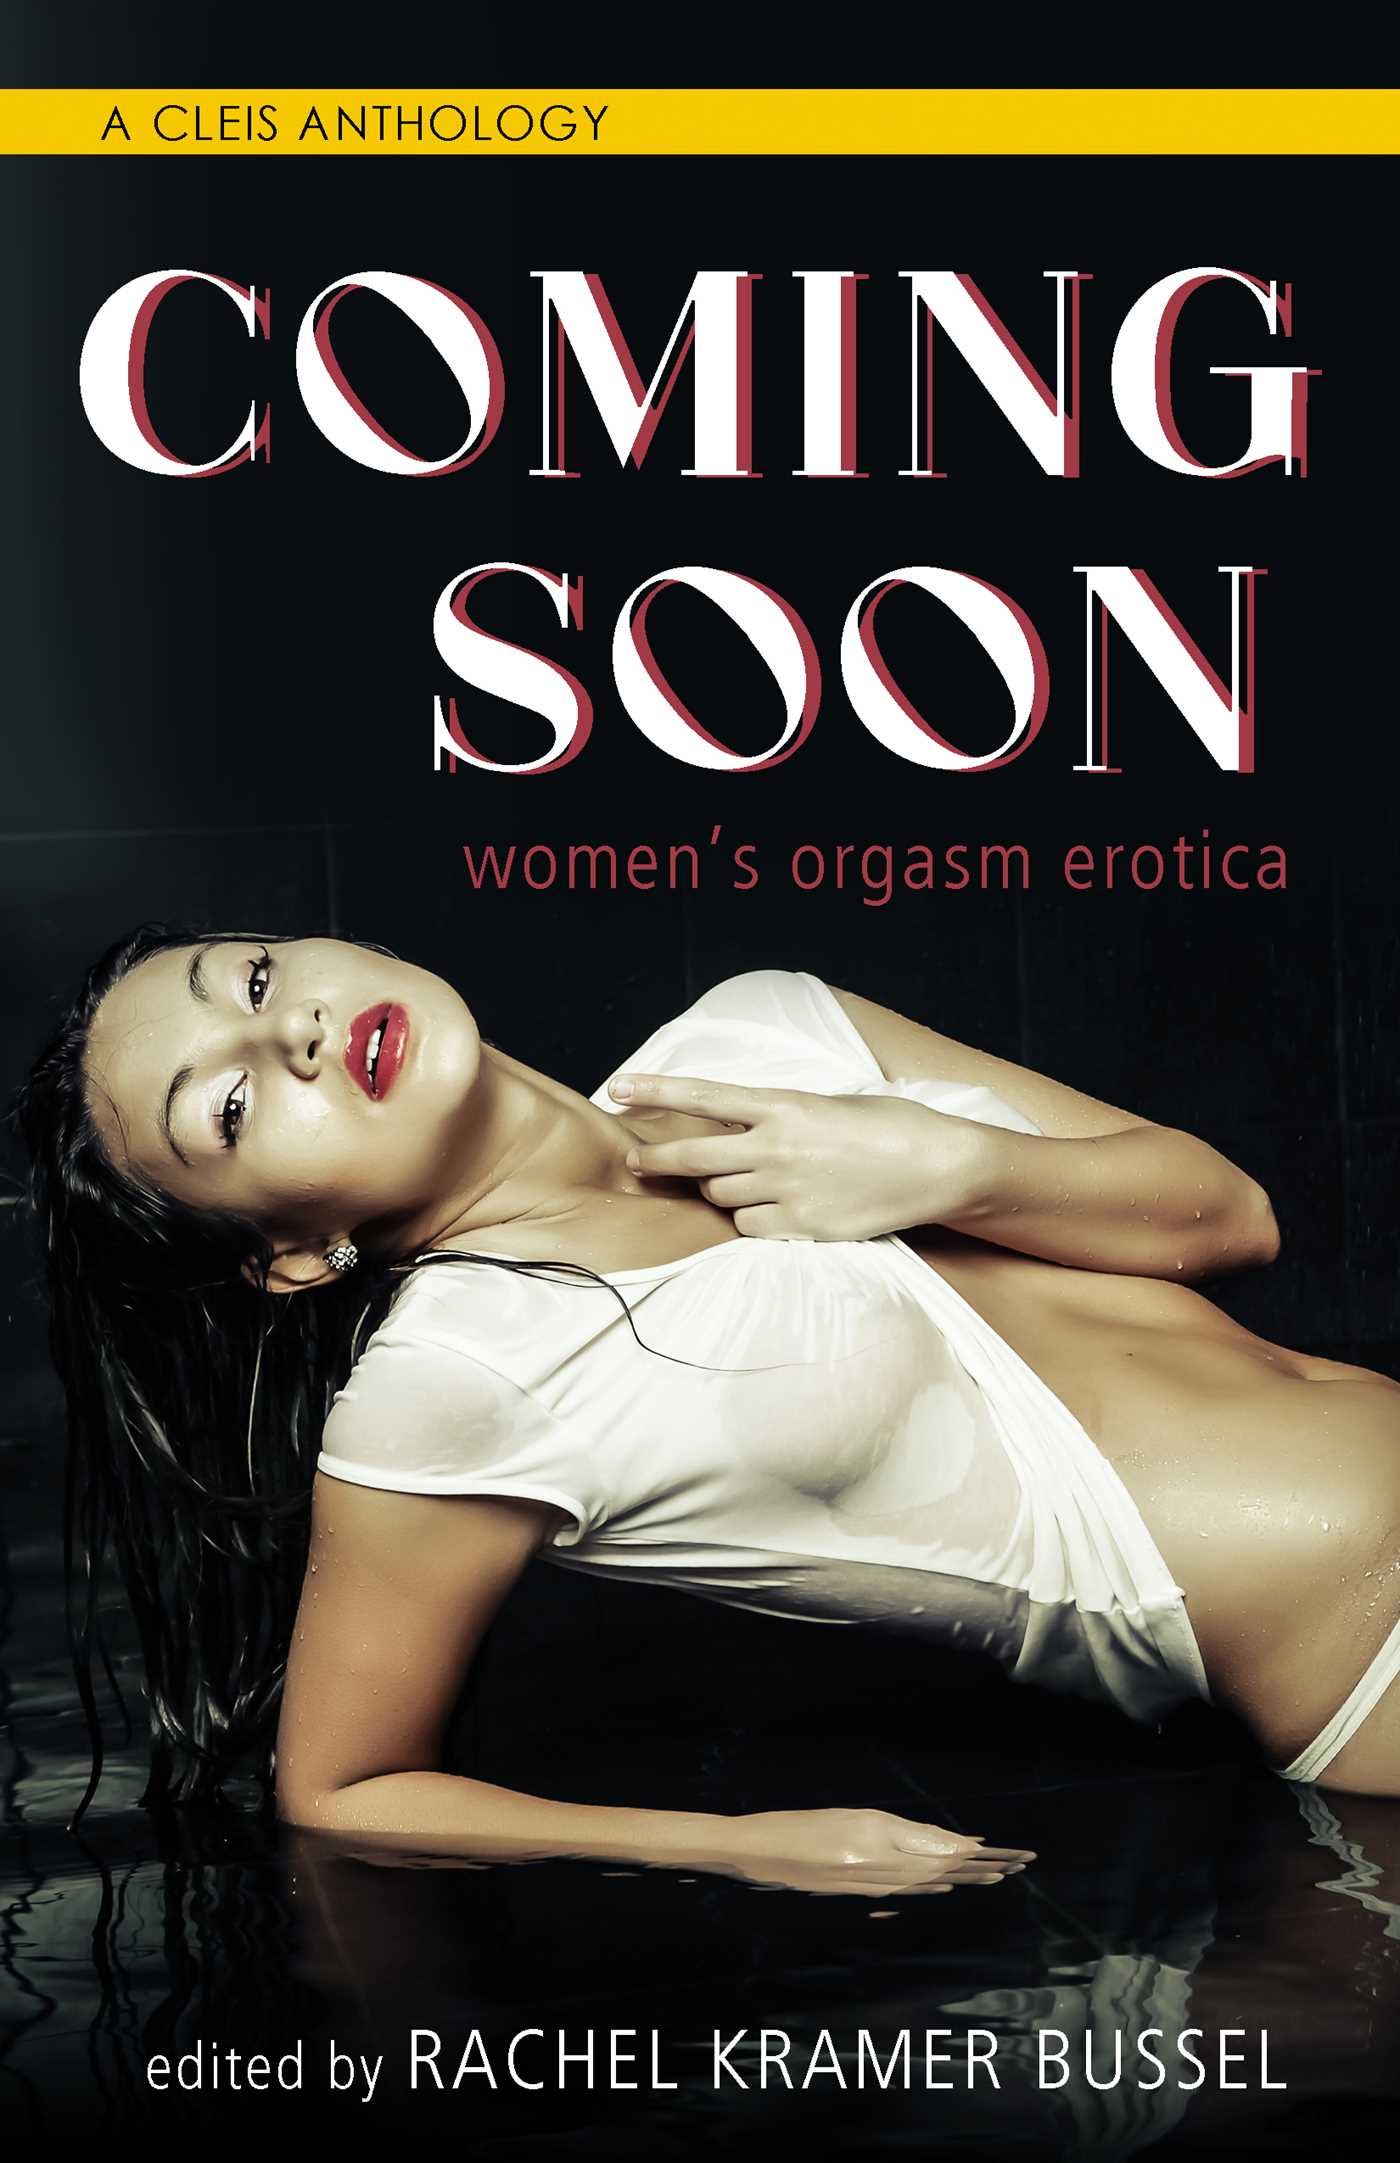 Coming Soon: Women's Orgasm Erotica